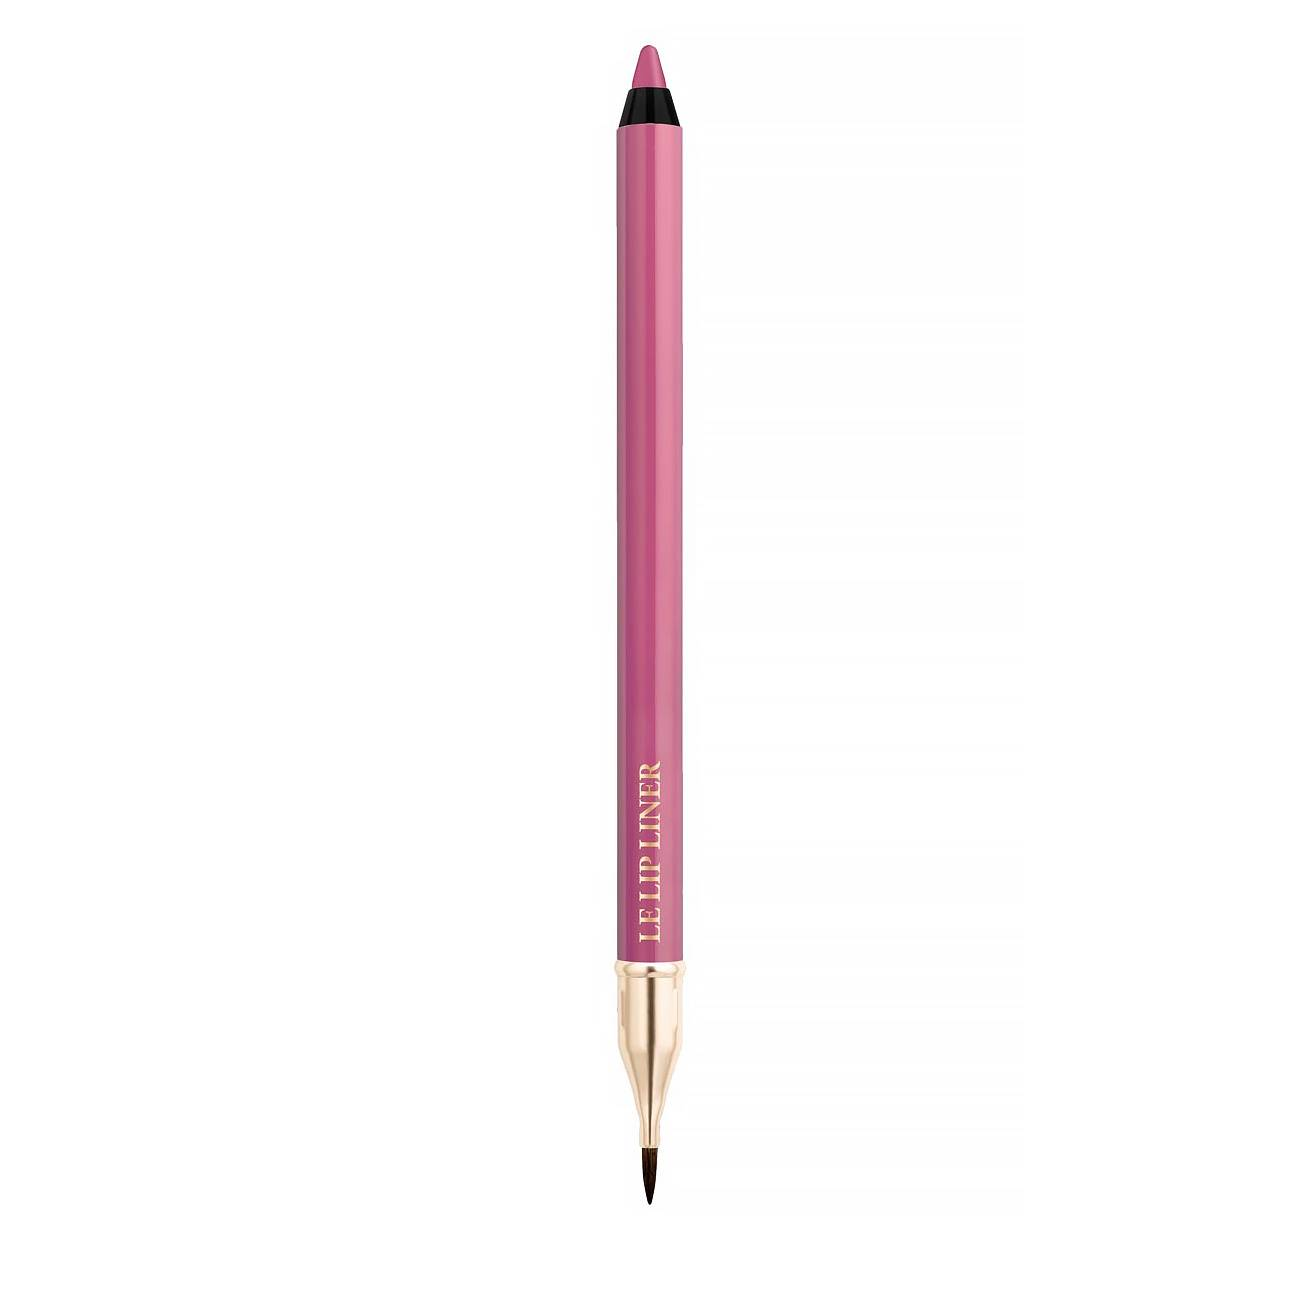 Lip Liner 317 1gr Lancôme imagine 2021 bestvalue.eu